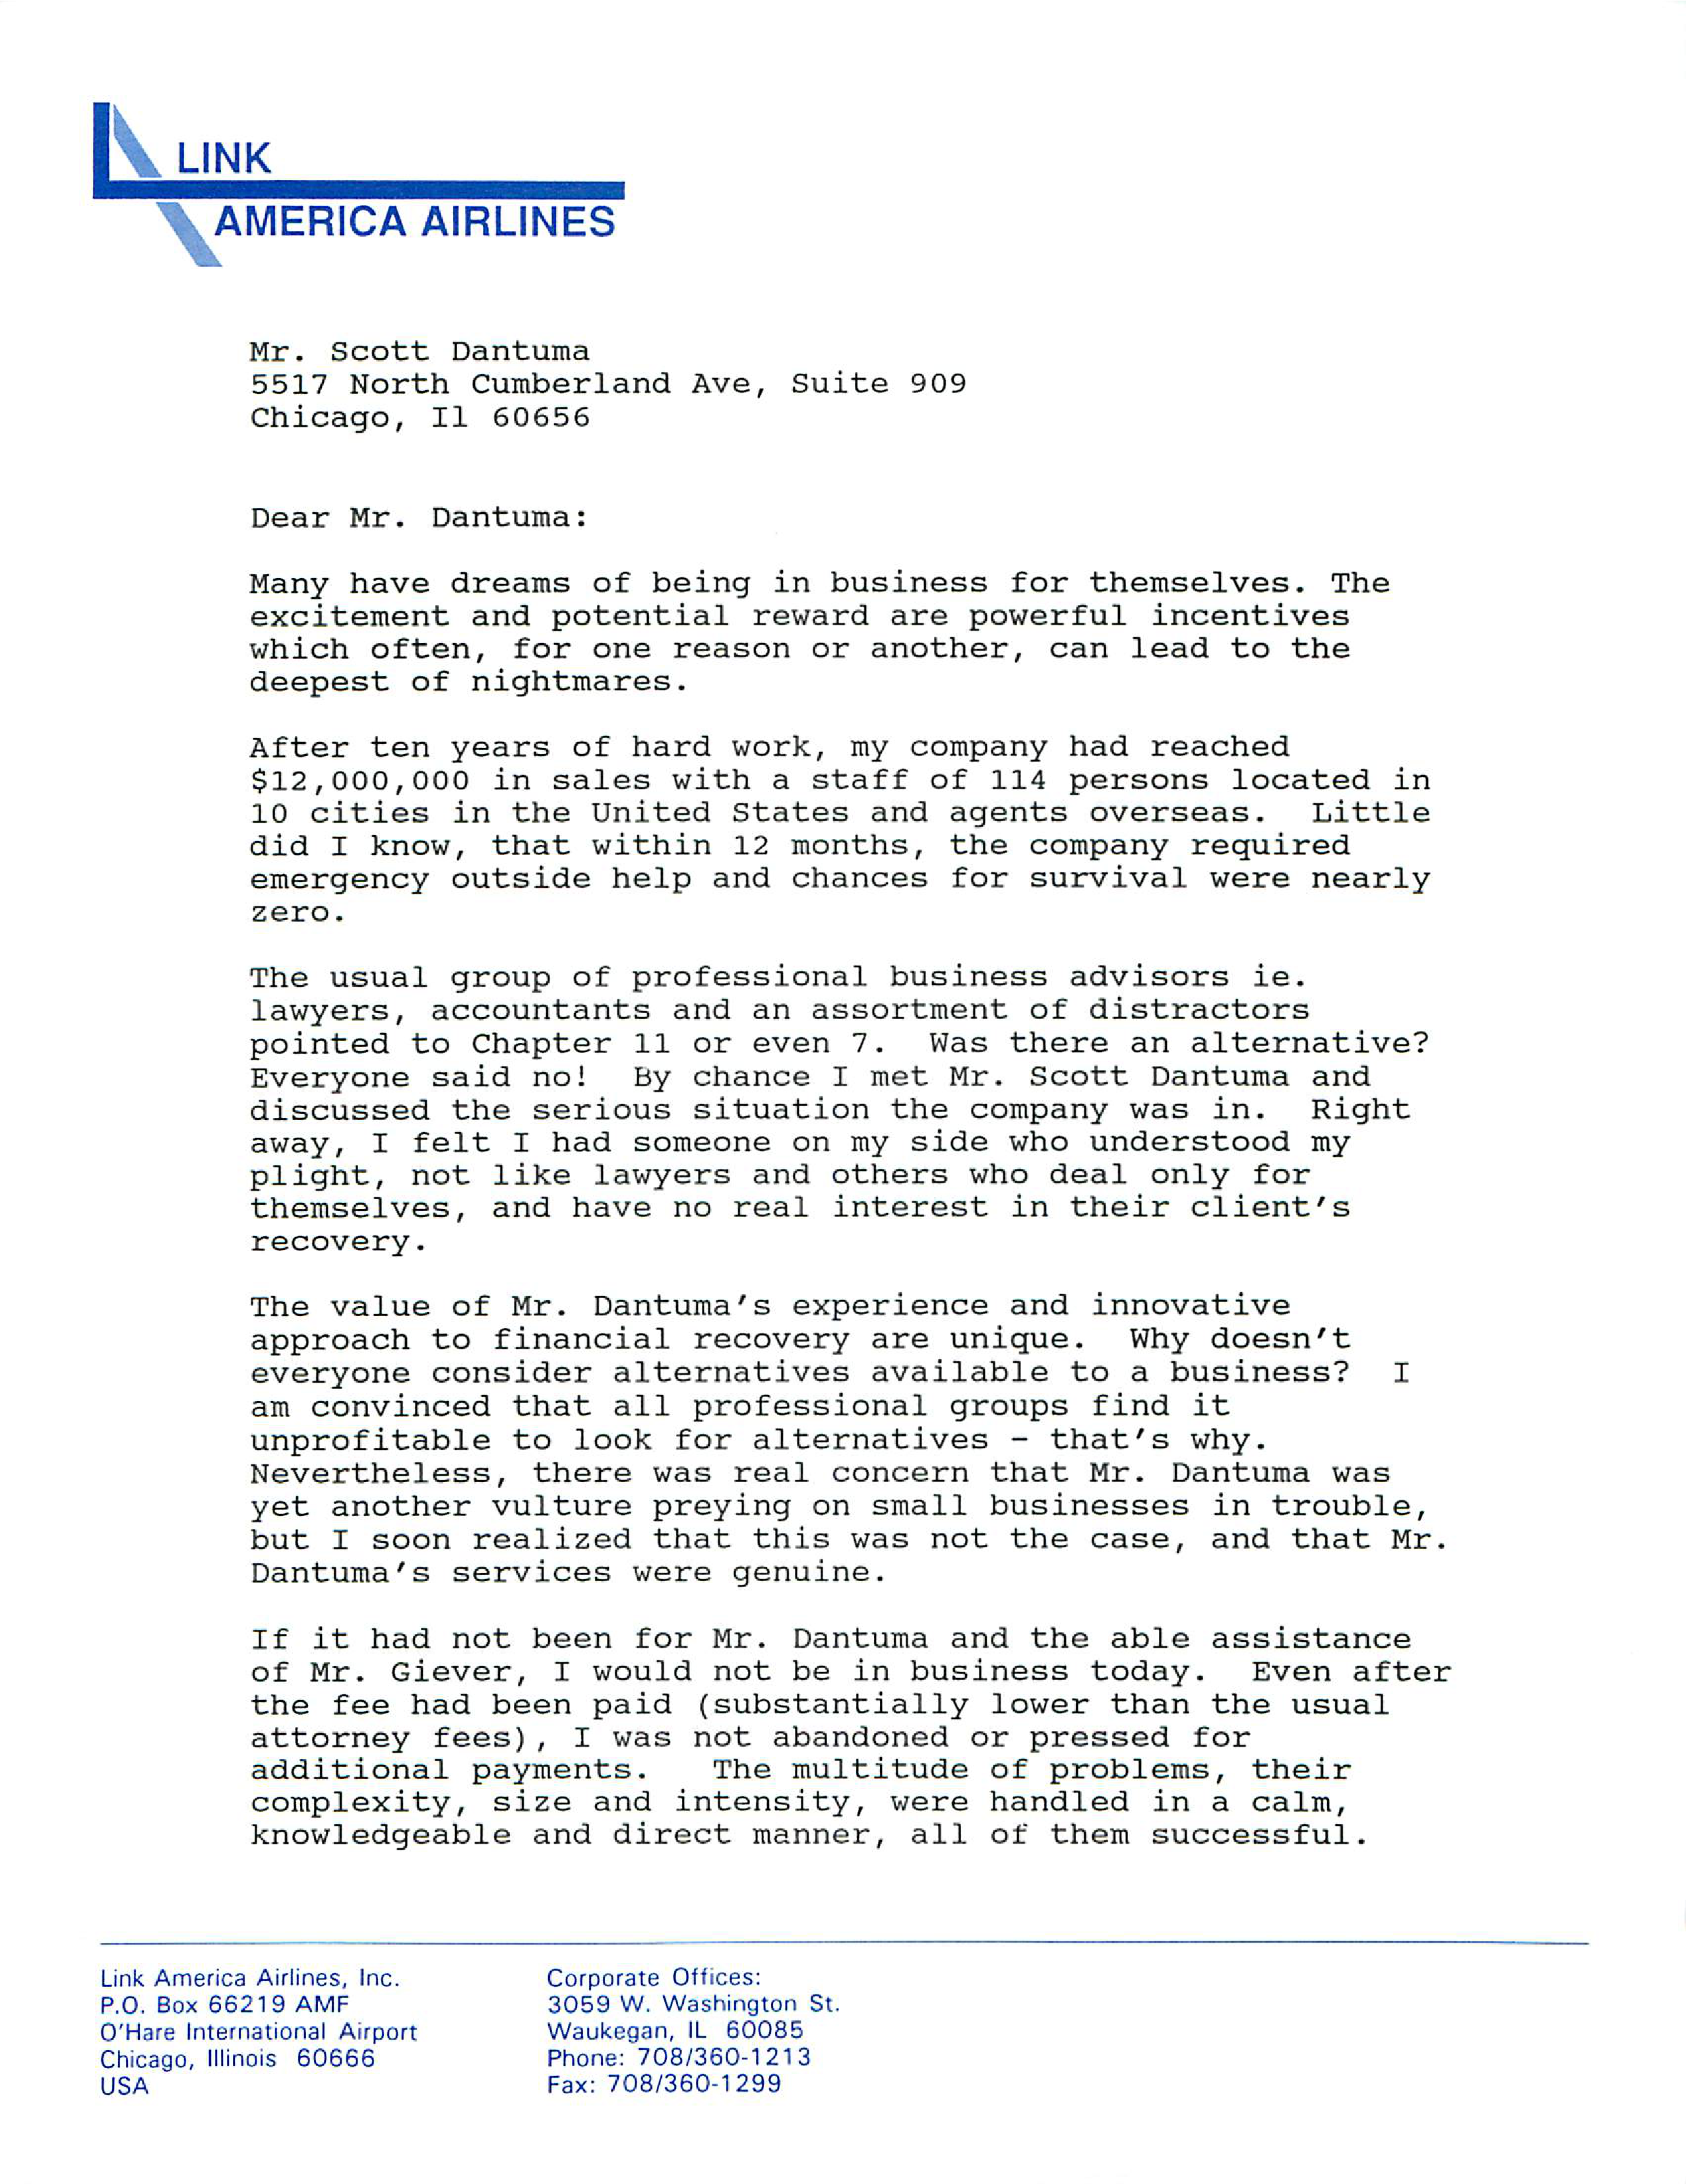 Scan of Link America Airlines testimonial letter